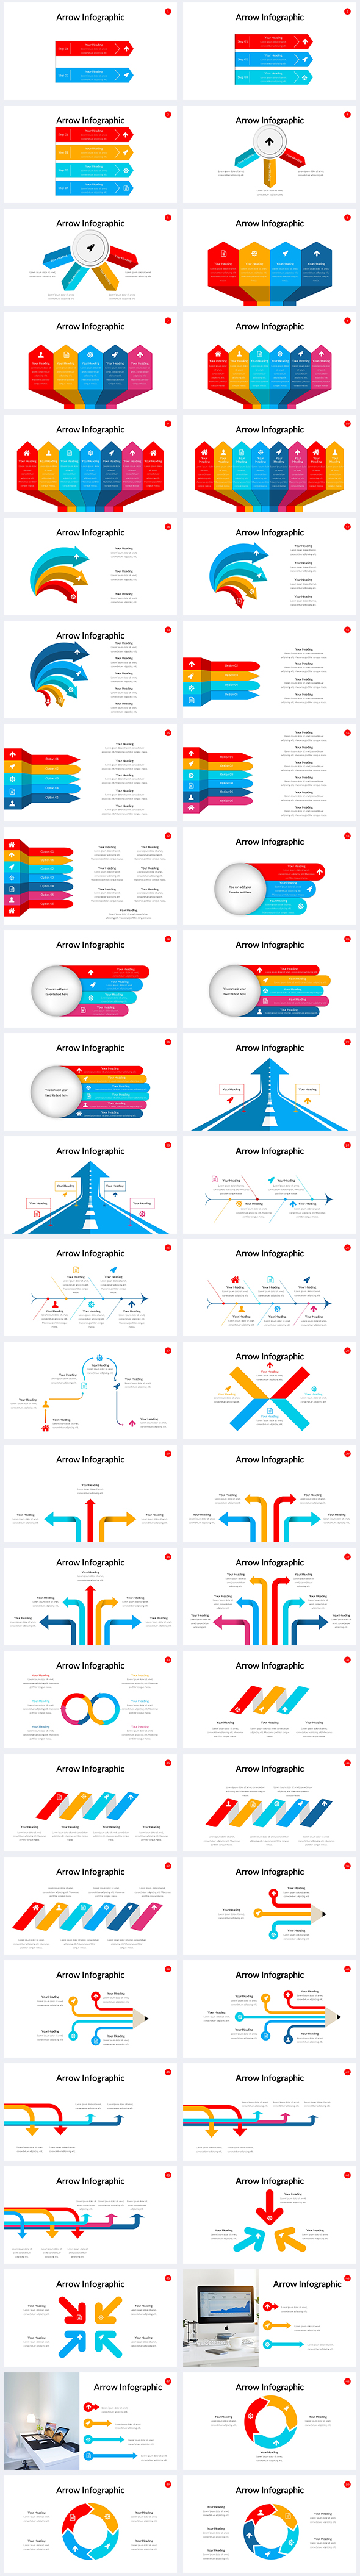 Arrows-Infographic-Power-Point-Template